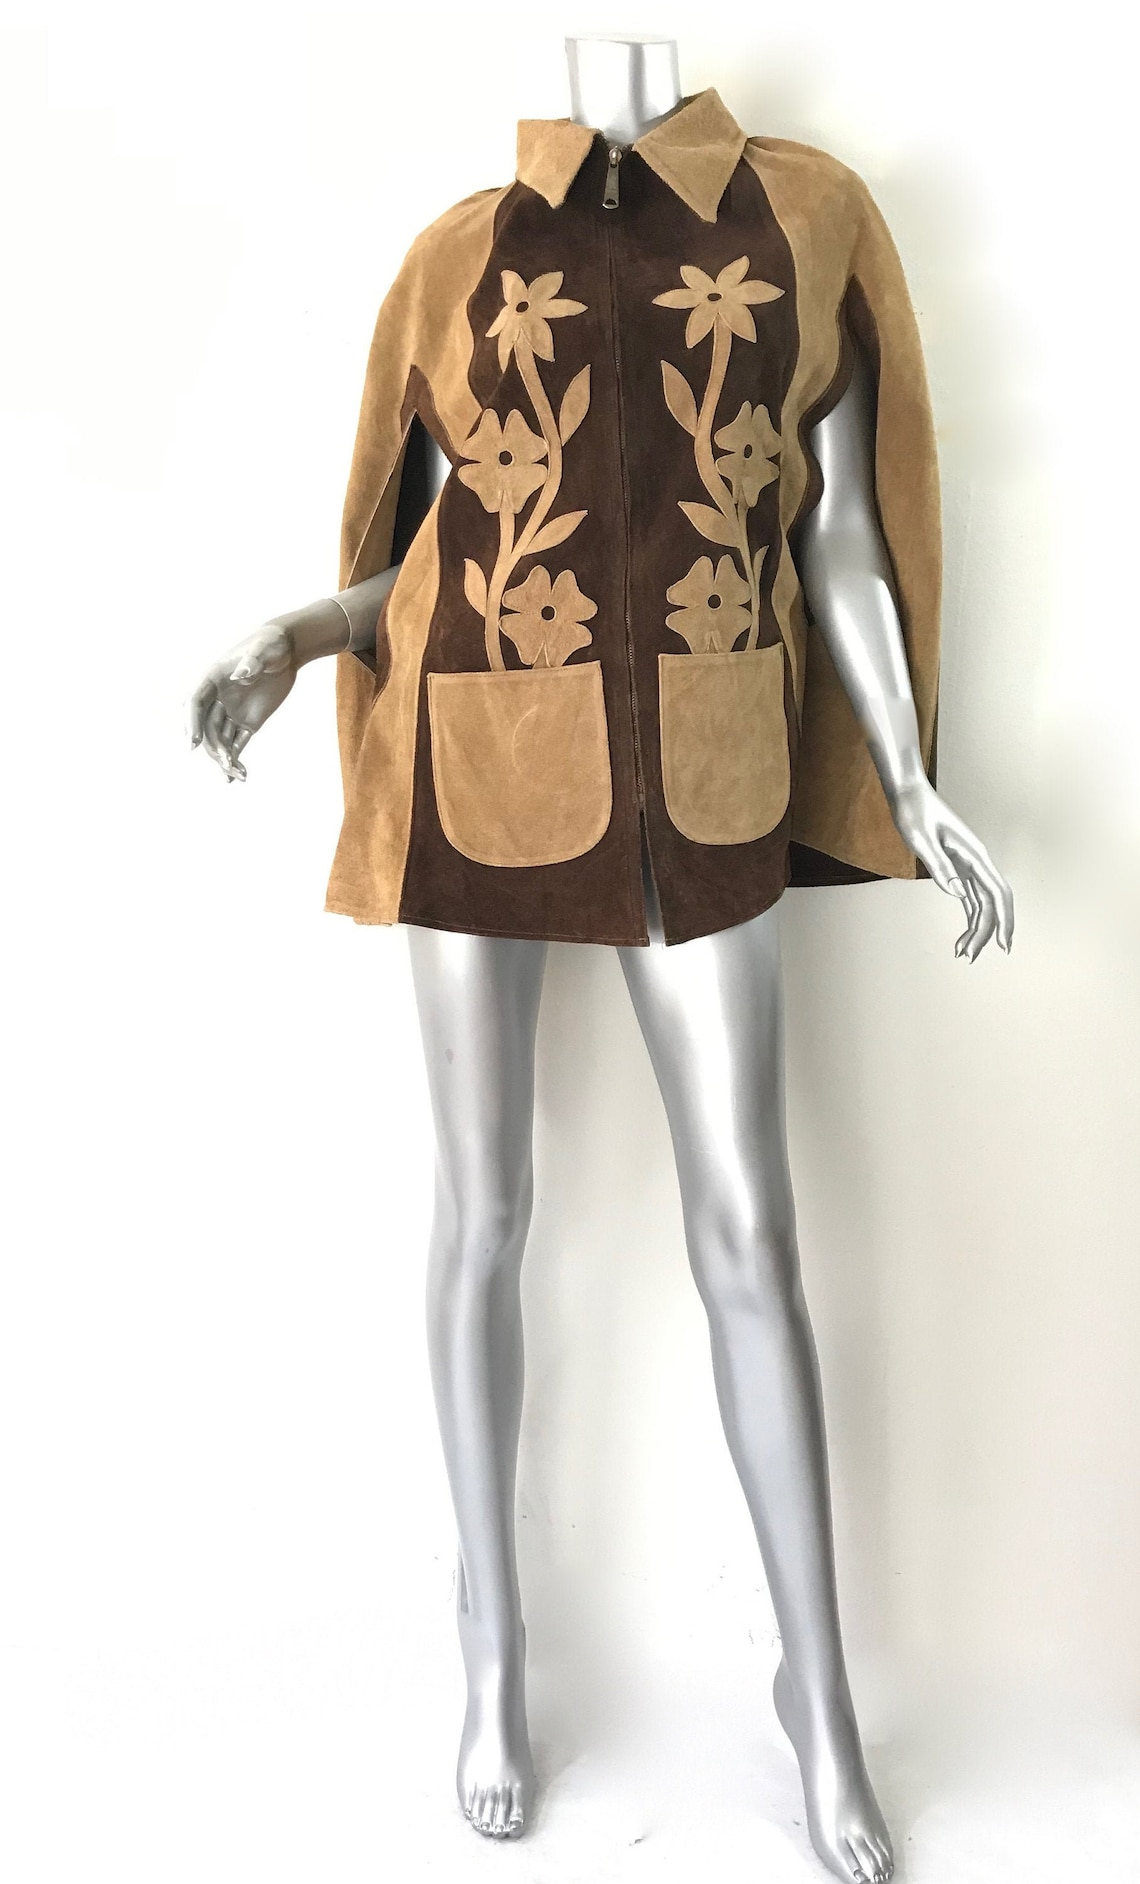 Vintage Brown Tan Suede Cape Poncho Coat Jacket Pockets Zip Front Collared 70's Festival Hippie Floral Flower